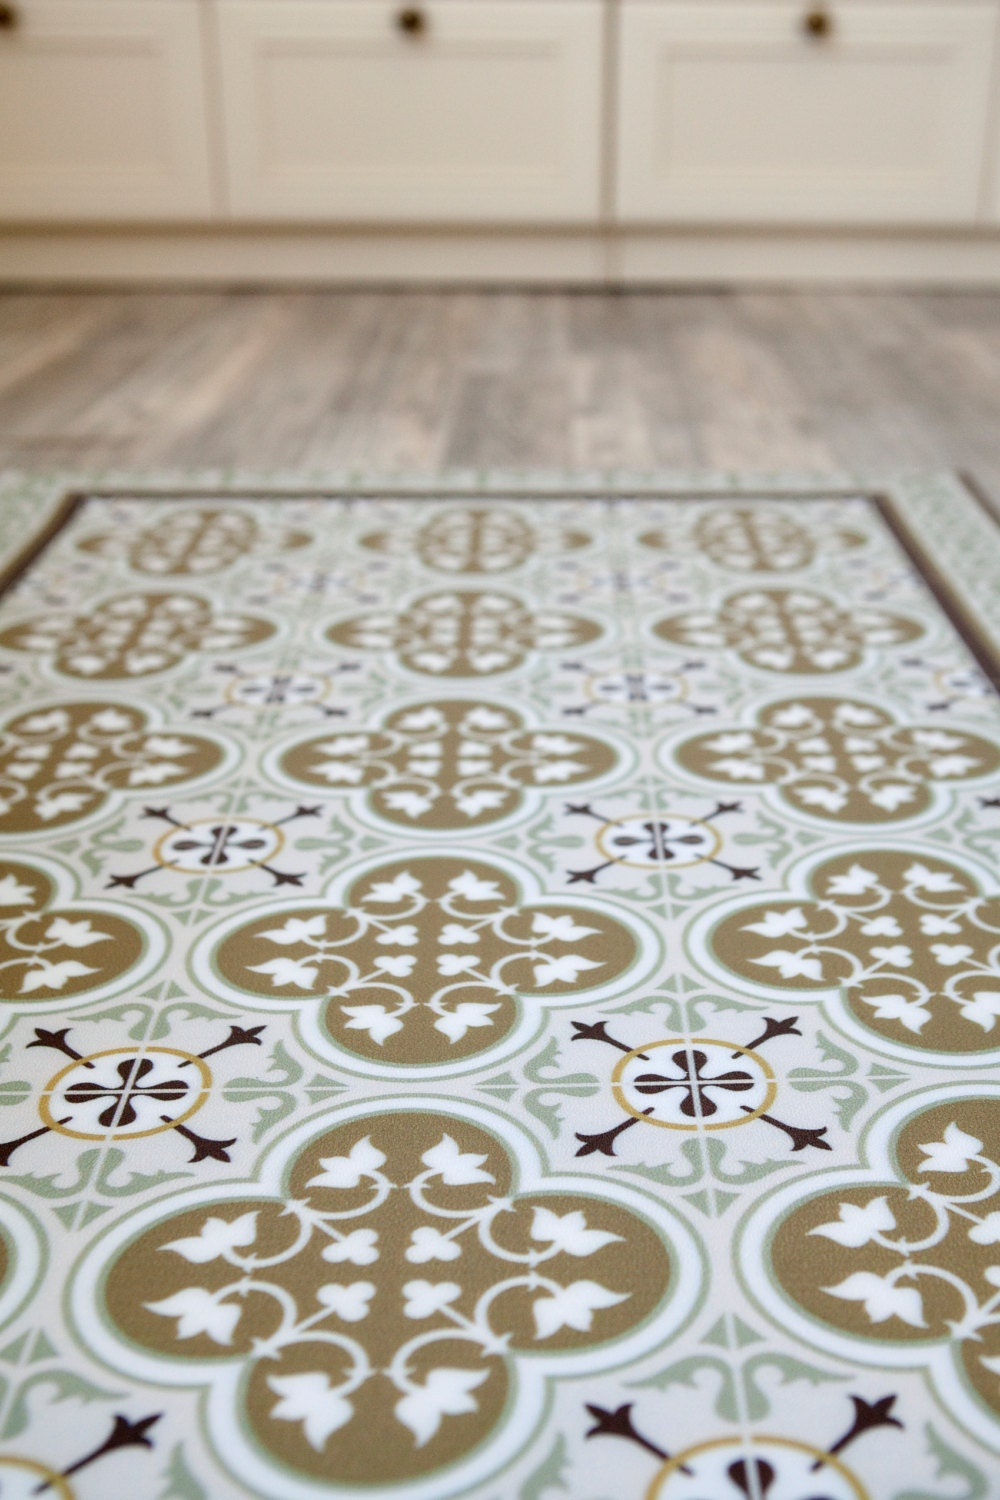 Free Shipping Tiles Pattern Decorative PVC Vinyl Mat Linoleum